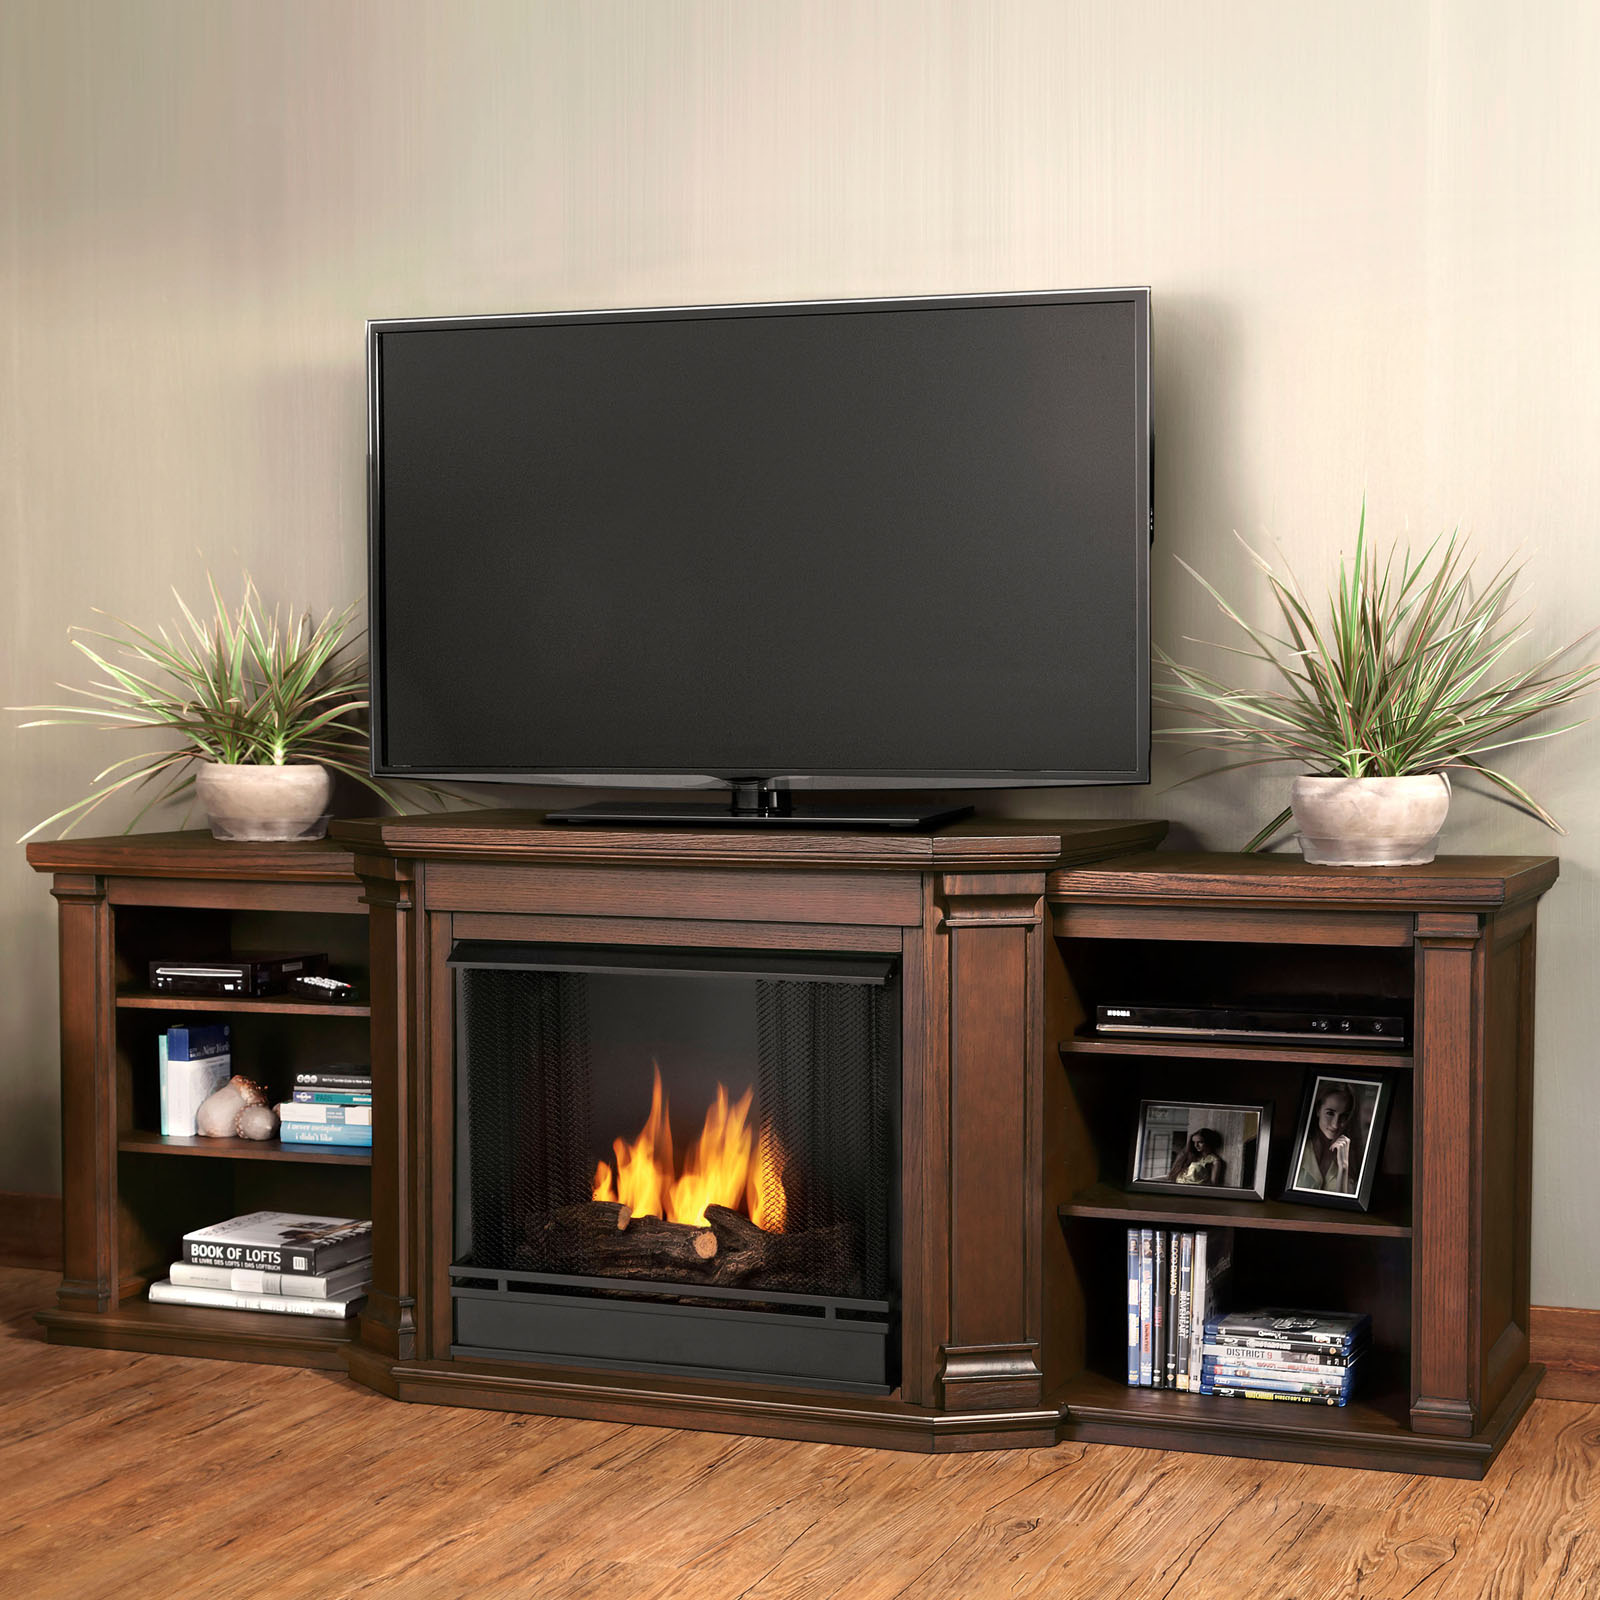 xiorex coventry greenway in stand flat tv fireplaces stands espresso panel muskoka cherry by with fireplace